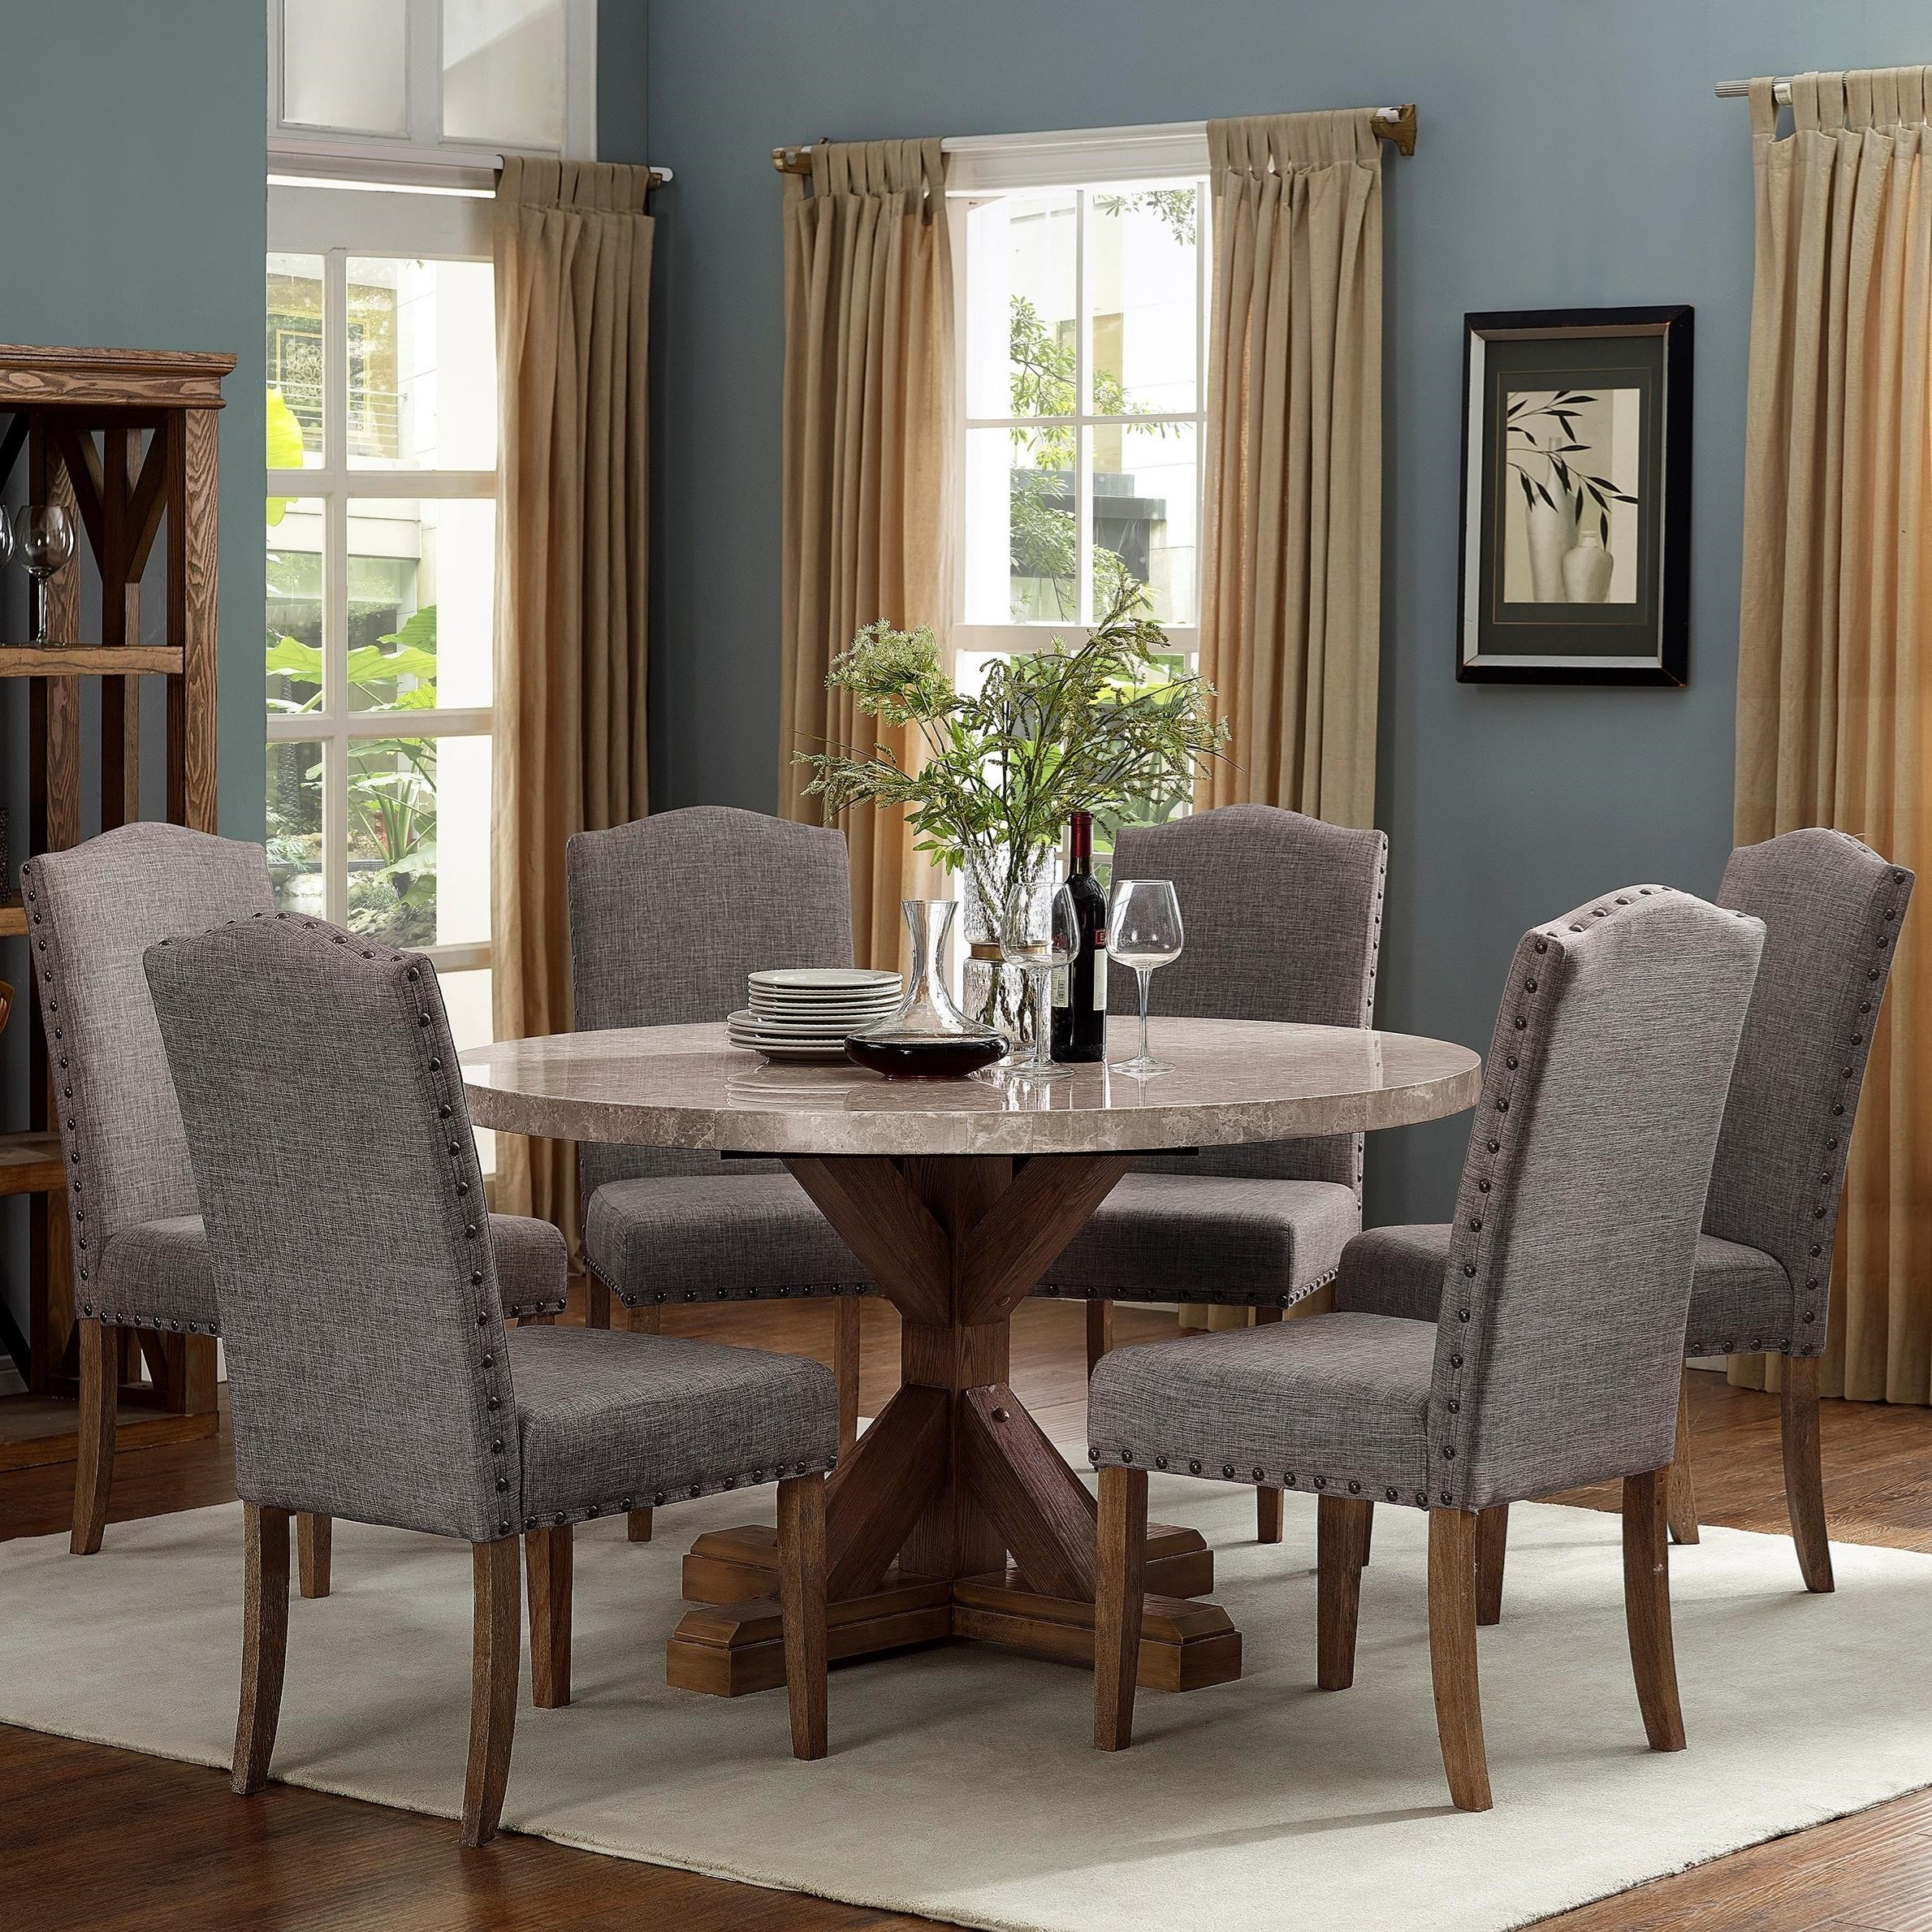 Vesper Dining Dining Room Set by Crown Mark at Northeast Factory Direct